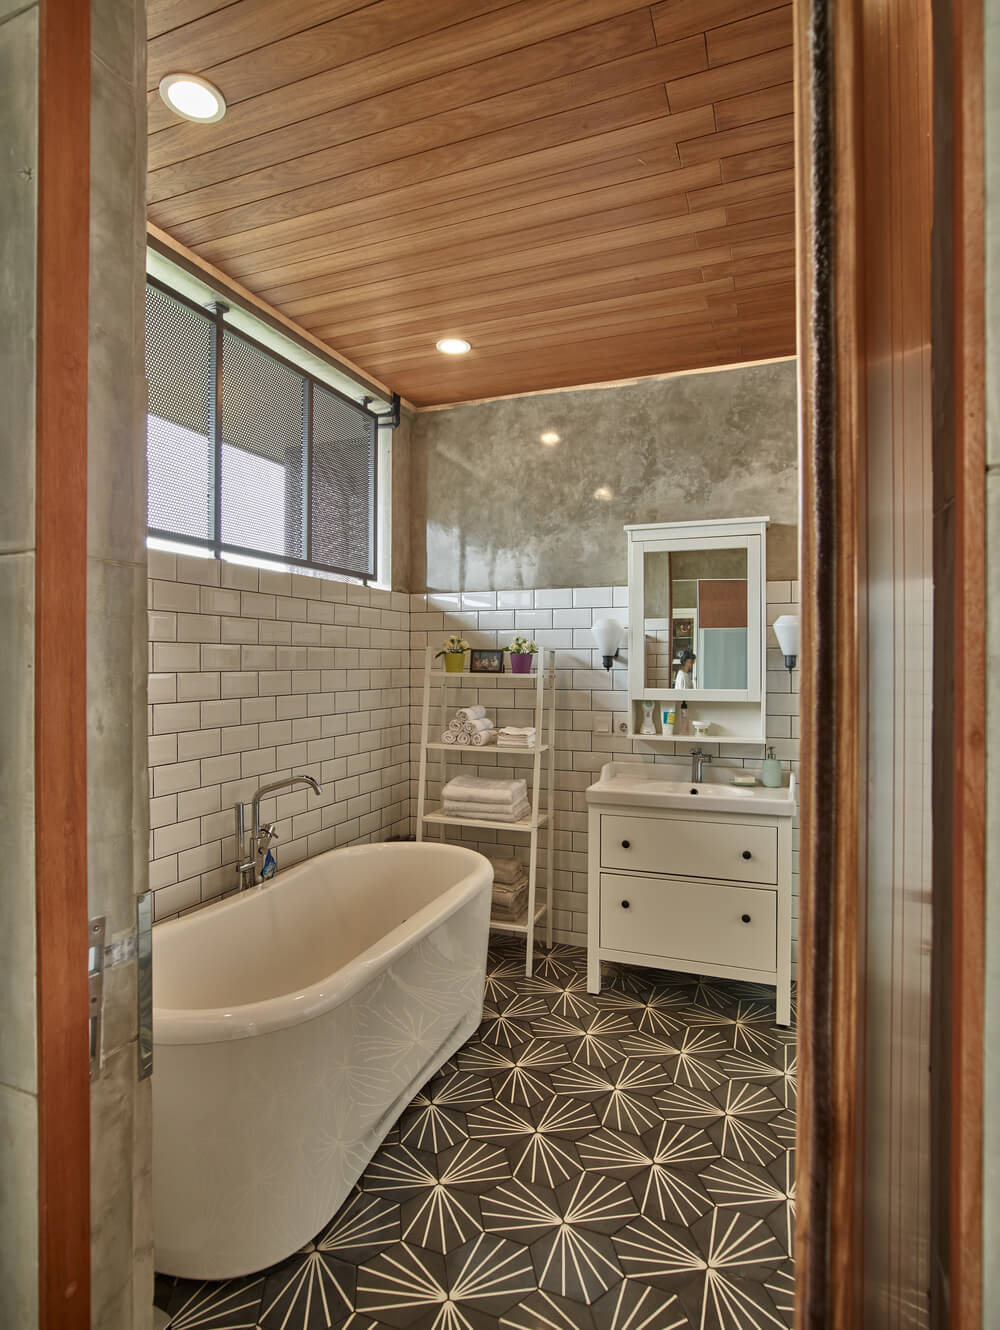 This other bathroom has a large freestanding bathtub under the window paired with white subway tiles on the walls.